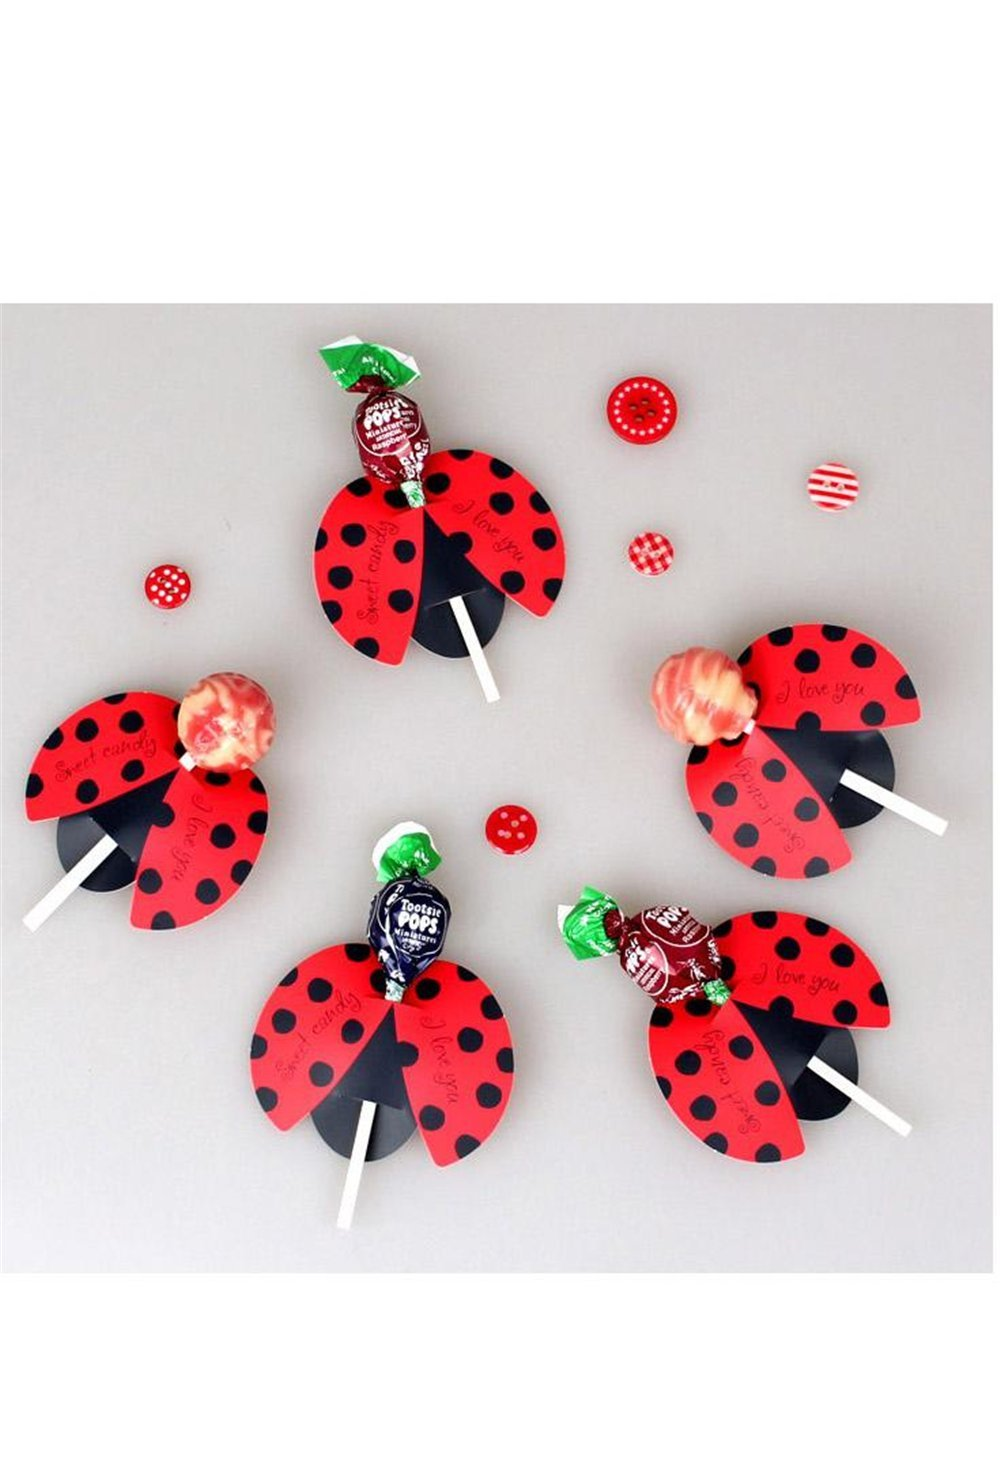 50pcs Candy Lollipop Decoration Gift Cute Insect Bees Ladybug Butterfly Card Birthday Party For Kids Wedding Decor (Ladybird)